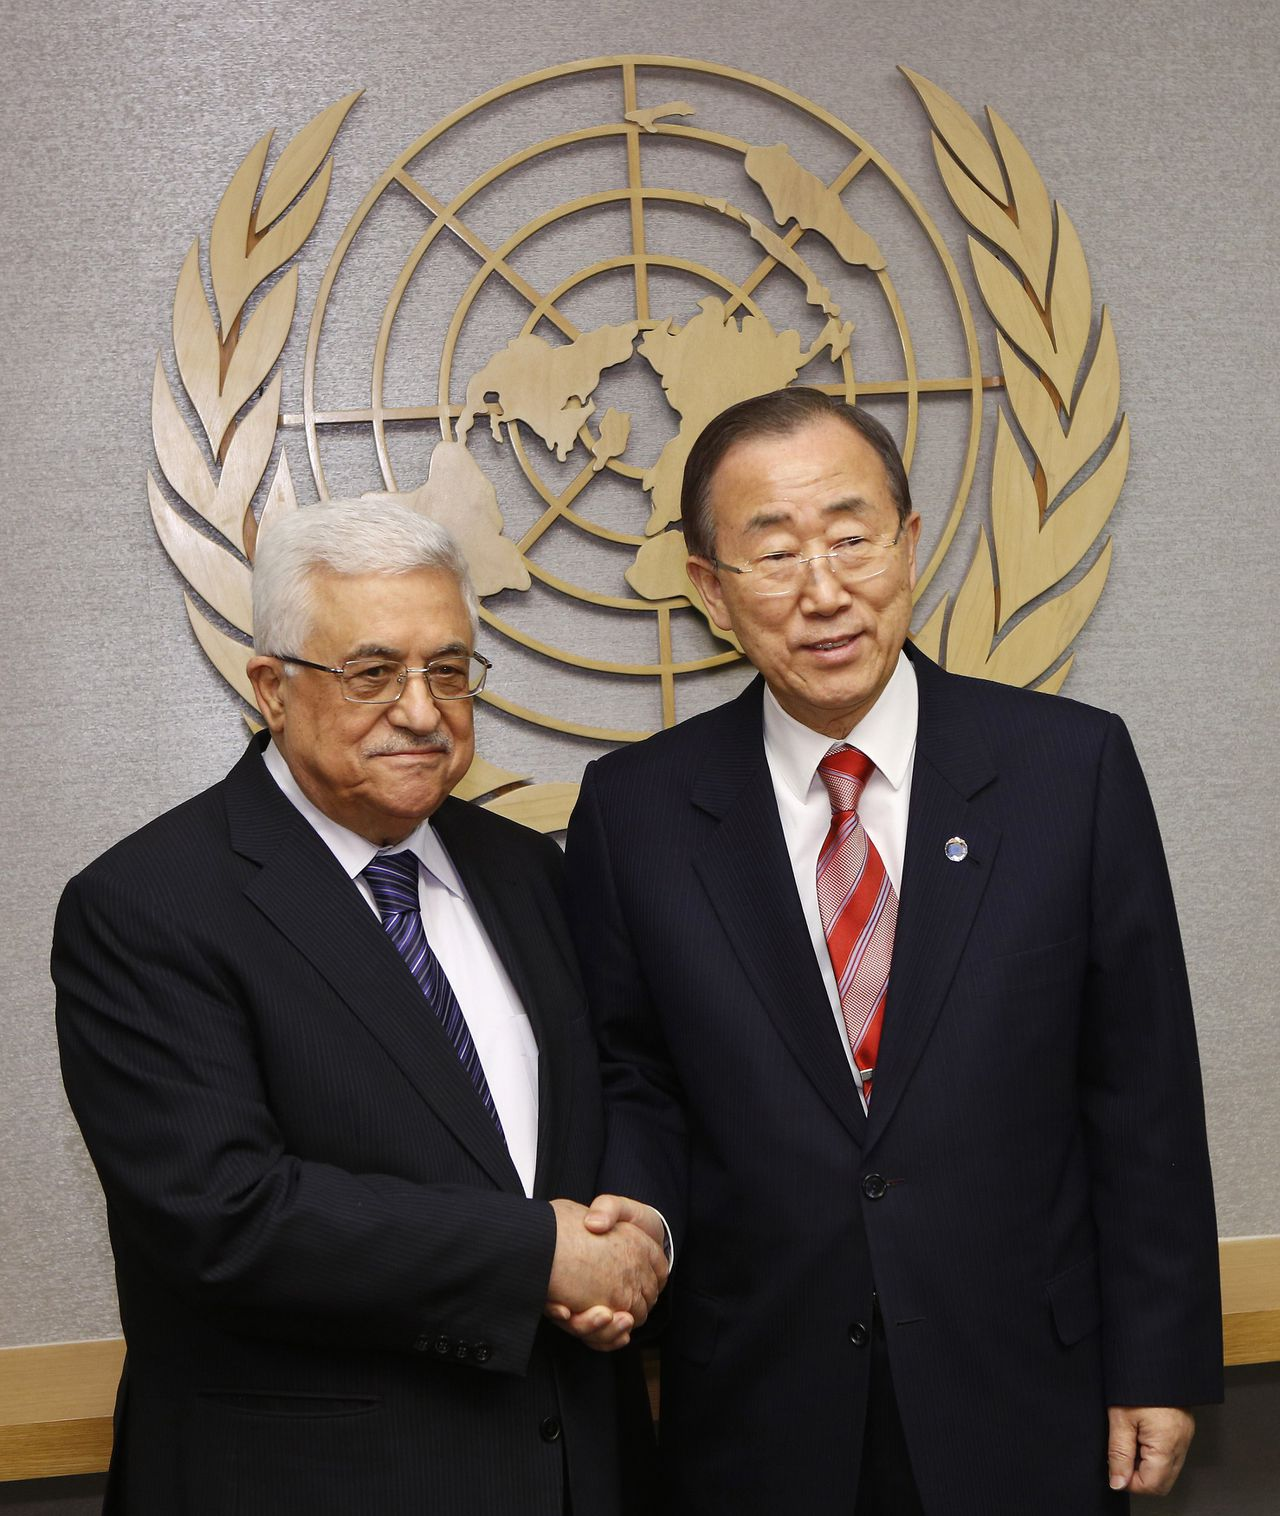 Palestinian President Mahmoud Abbas (L) shakes hands with United Nations Secretary General Ban Ki-moon at the U.N. headquarters in New York November 28, 2012. A Palestinian bid for indirect U.N. recognition of statehood received vows of support from more than a dozen European nations as of Wednesday, and diplomats said this backing may deter Israel from harsh retaliation against the Palestinian Authority for seeking to upgrade its U.N. status. REUTERS/Chip East (UNITED STATES - Tags: POLITICS)